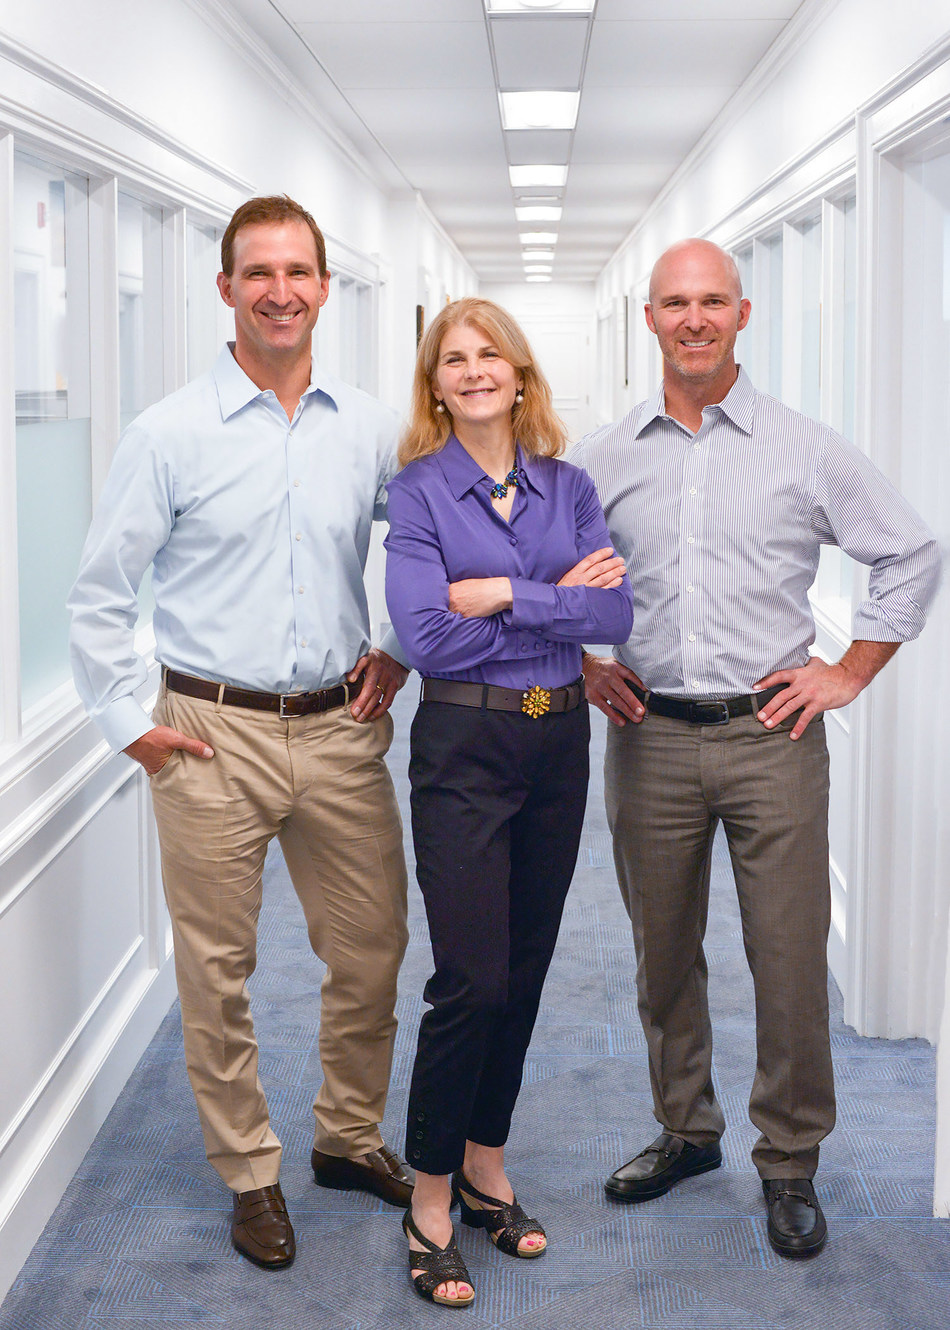 Ryan Raveis (Co-President), Lisa Carpenter (Chief Marketing Officer), and Chris Raveis (Co-President) at William Raveis Real Estate, Mortgage and Insurance headquarters in Shelton, CT. WRRE is the number one family-owned real estate company in the Northeast, and spanning to Florida, and the sixth largest independent real estate brokerage in the United States, according to RealTrends. (PRNewsfoto/William Raveis Real Estate, Mortgage & Insurance)